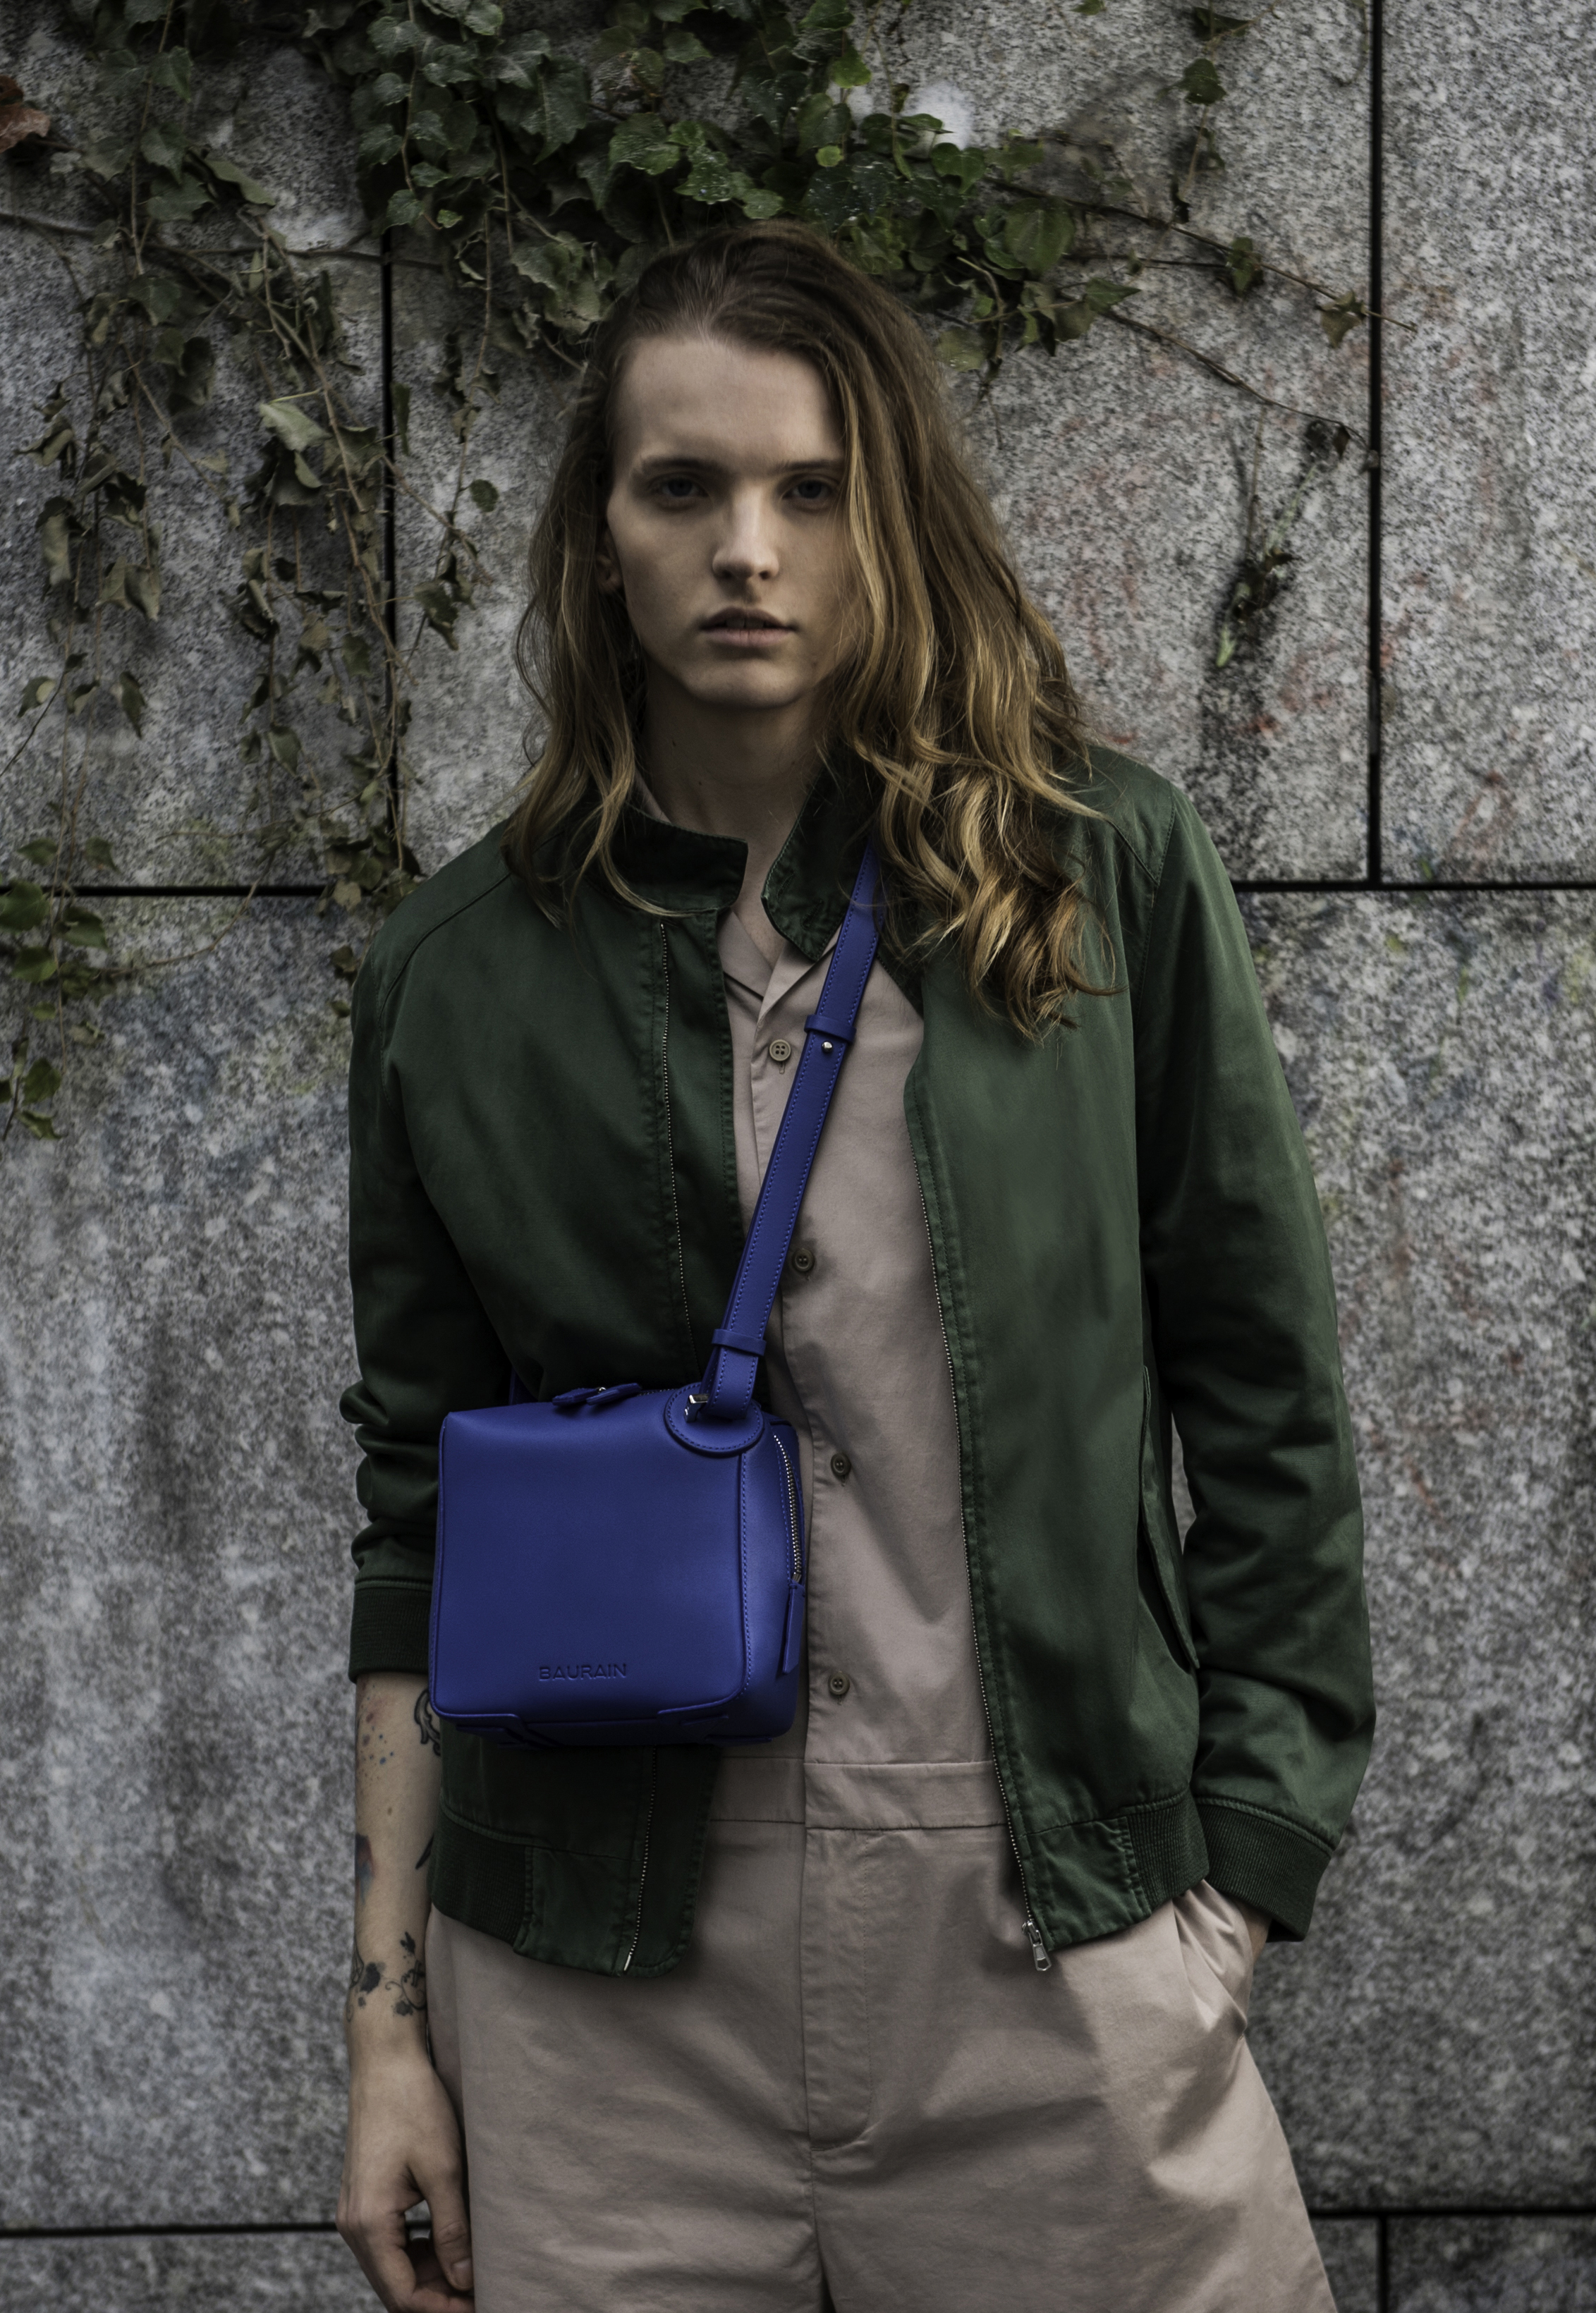 BAURAIN SS18 one crossbody bag